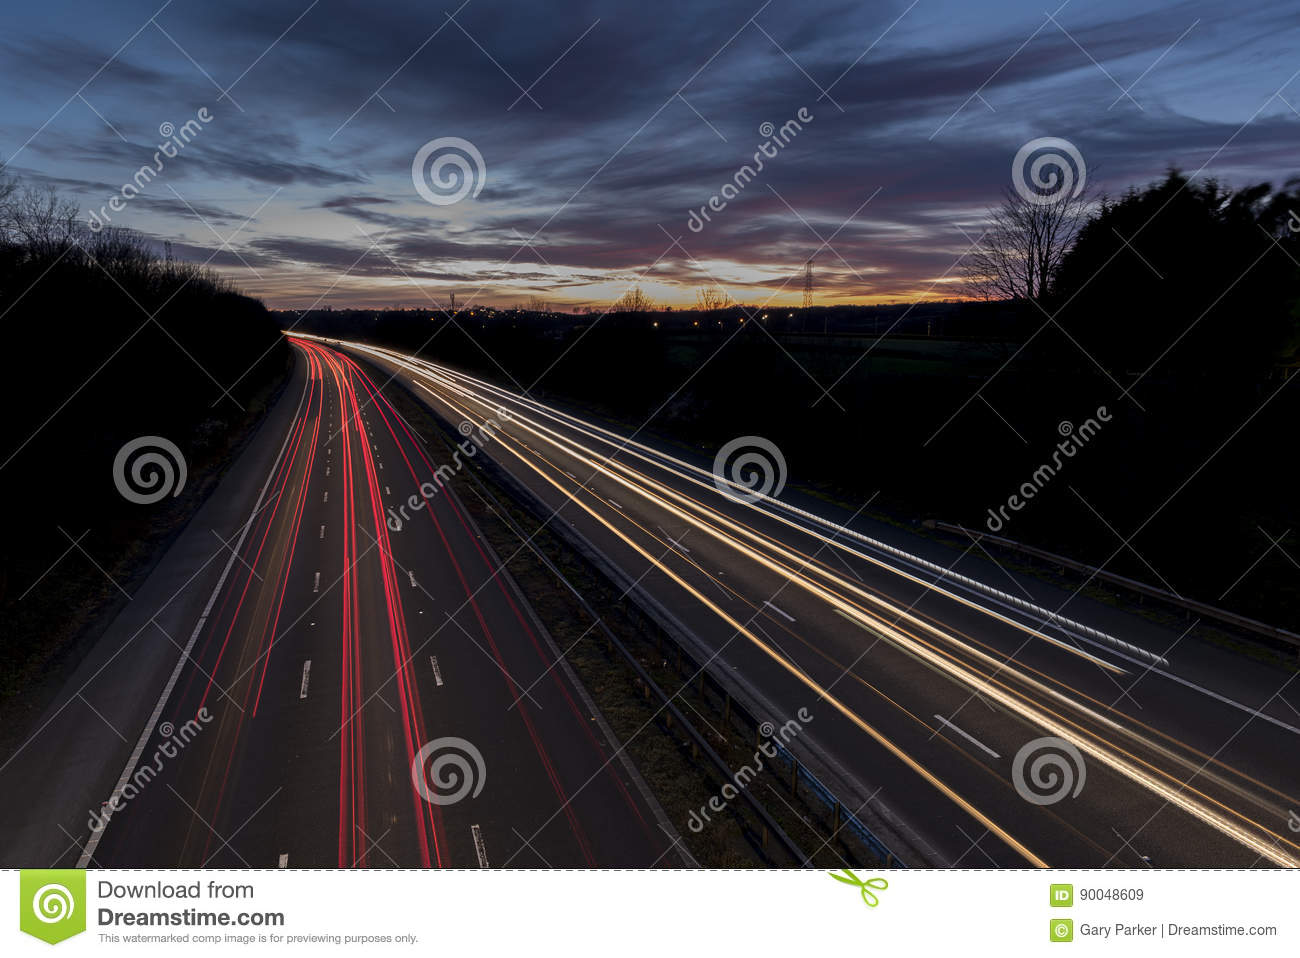 A UK motorway, at sunset, with light trails created by the traffic